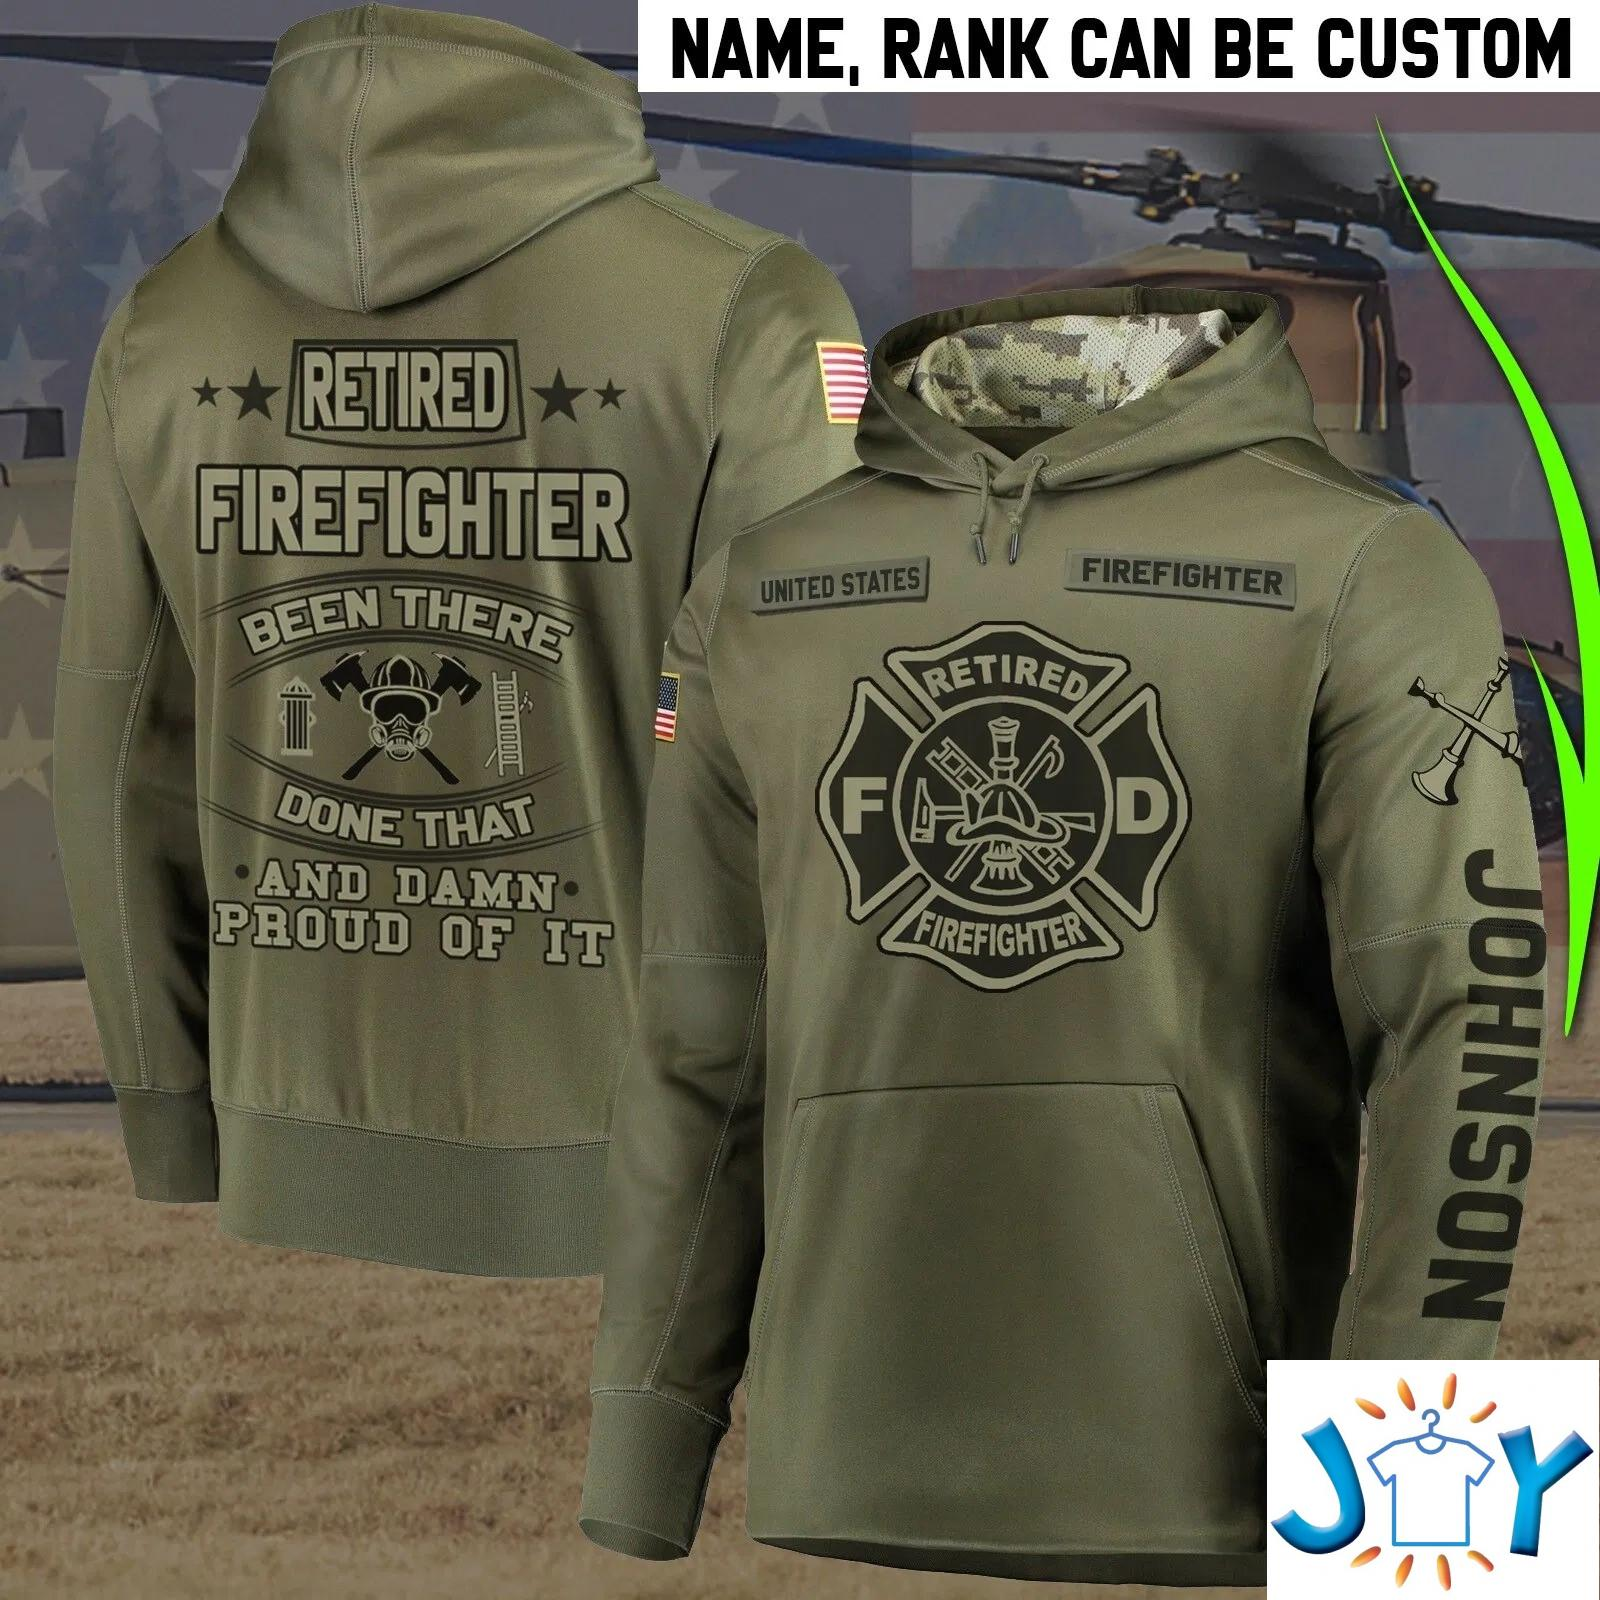 Retired Firefighter Been There Done That And Damn Proud Of It 3D Hoodie